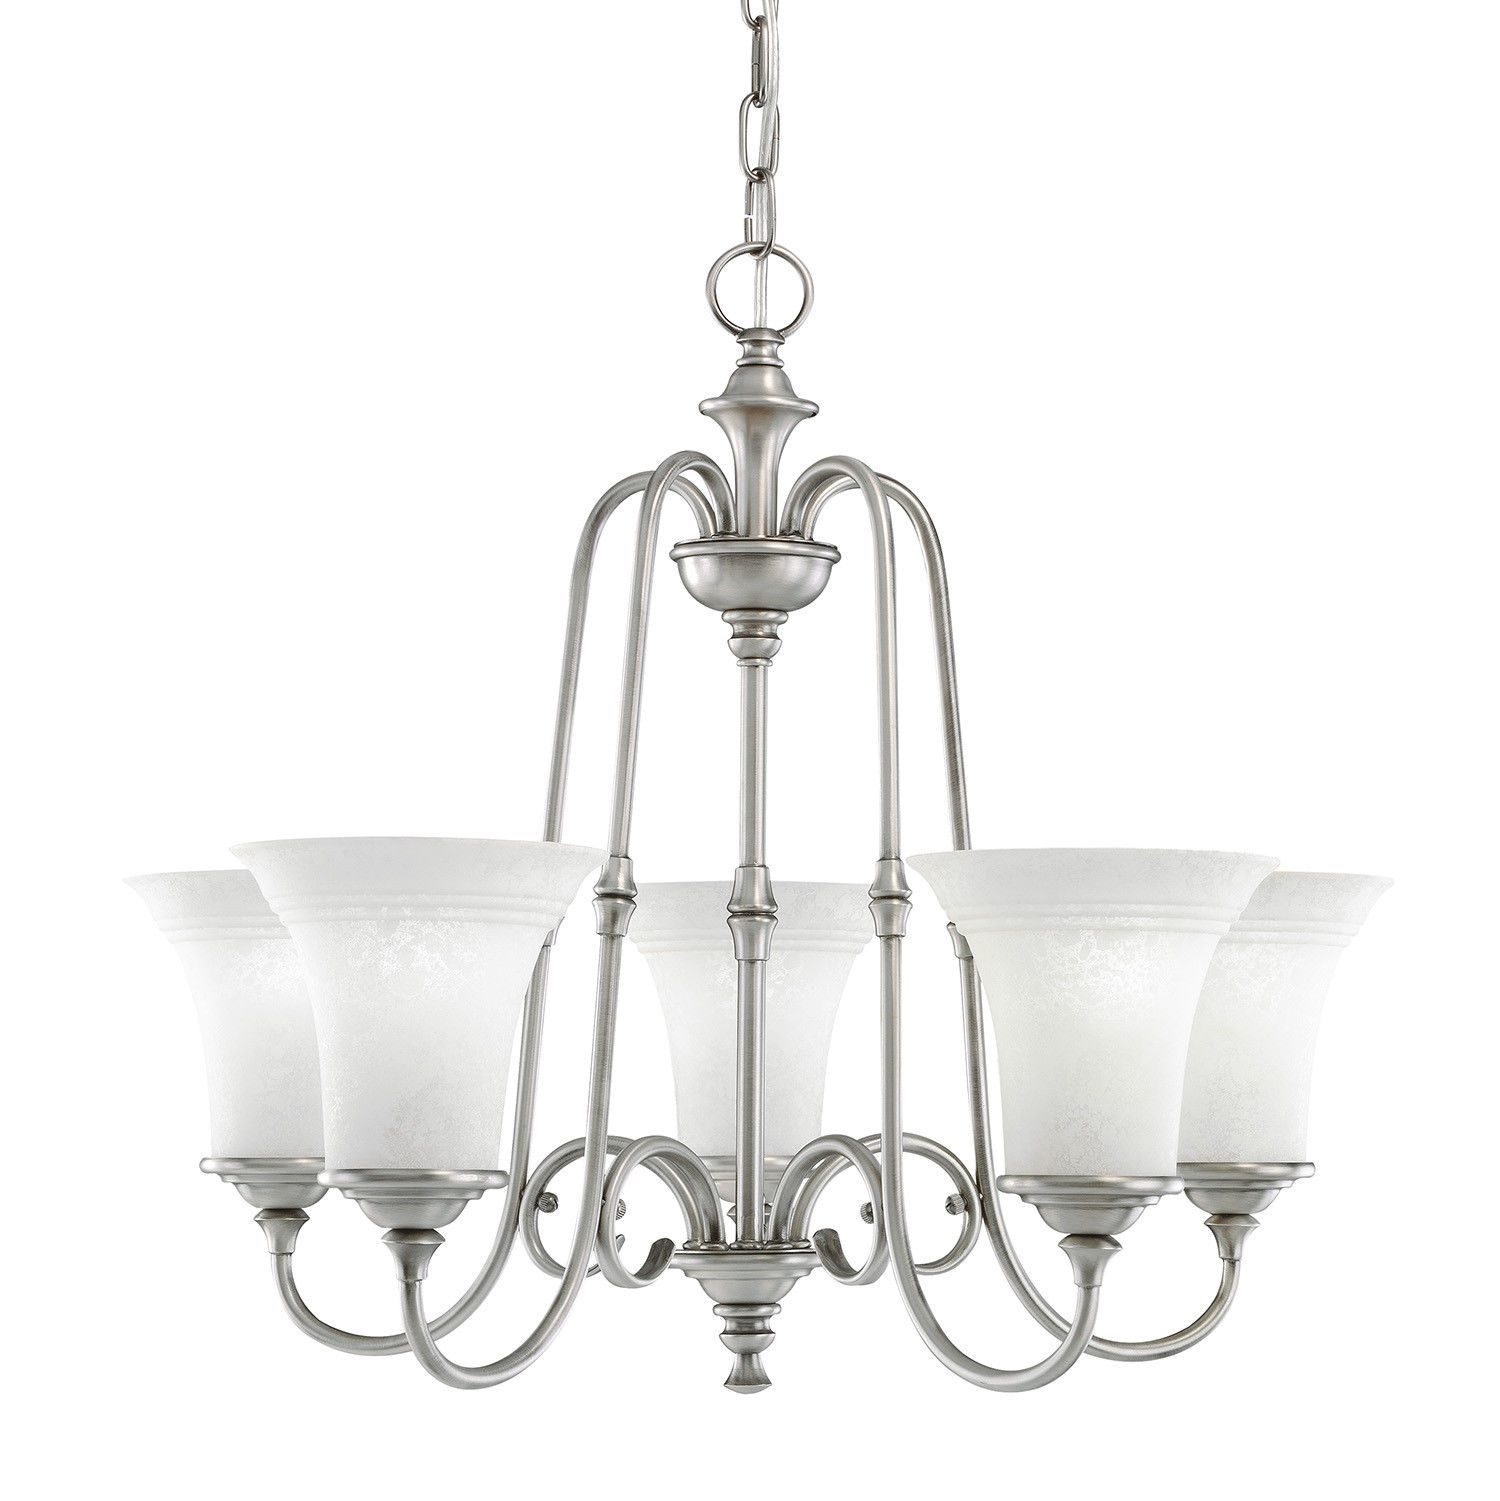 Aztec by kichler lighting 34921 five light northampton collection aztec by kichler lighting 34921 five light northampton collection hanging chandelier in antique pewter finish aloadofball Images